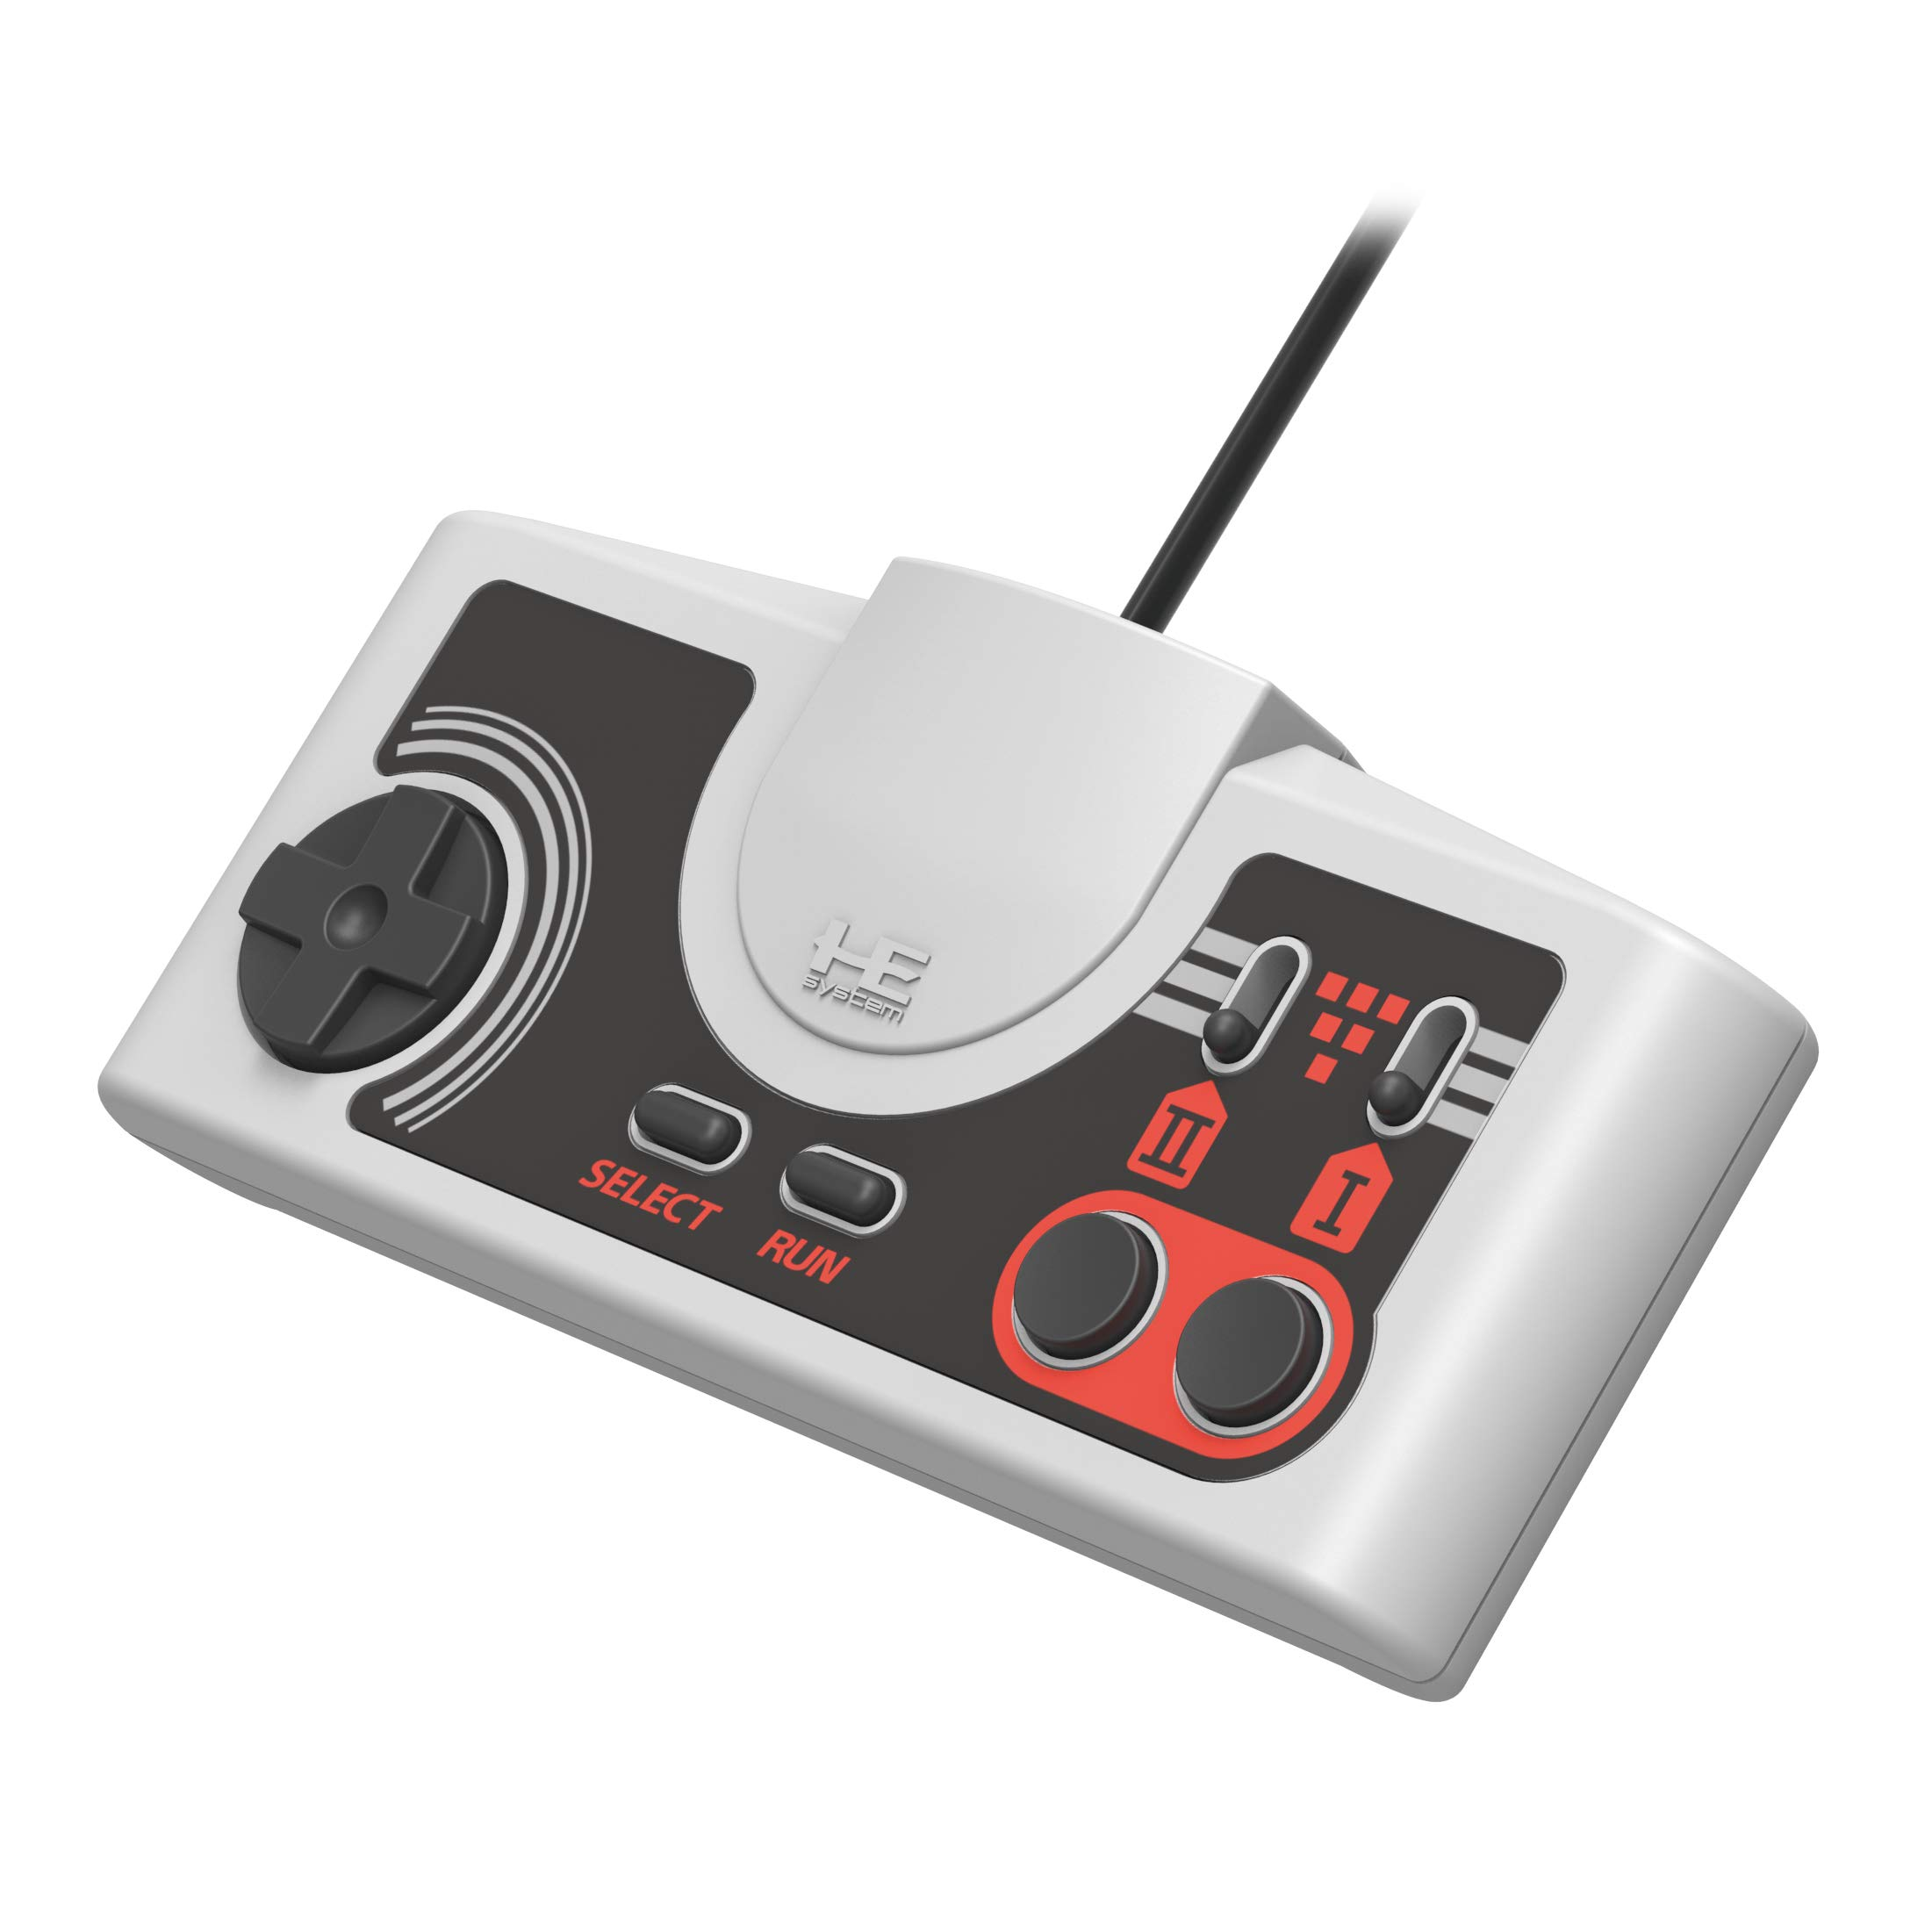 Official Turbo Controller for Turbografx-16 Mini by HORI